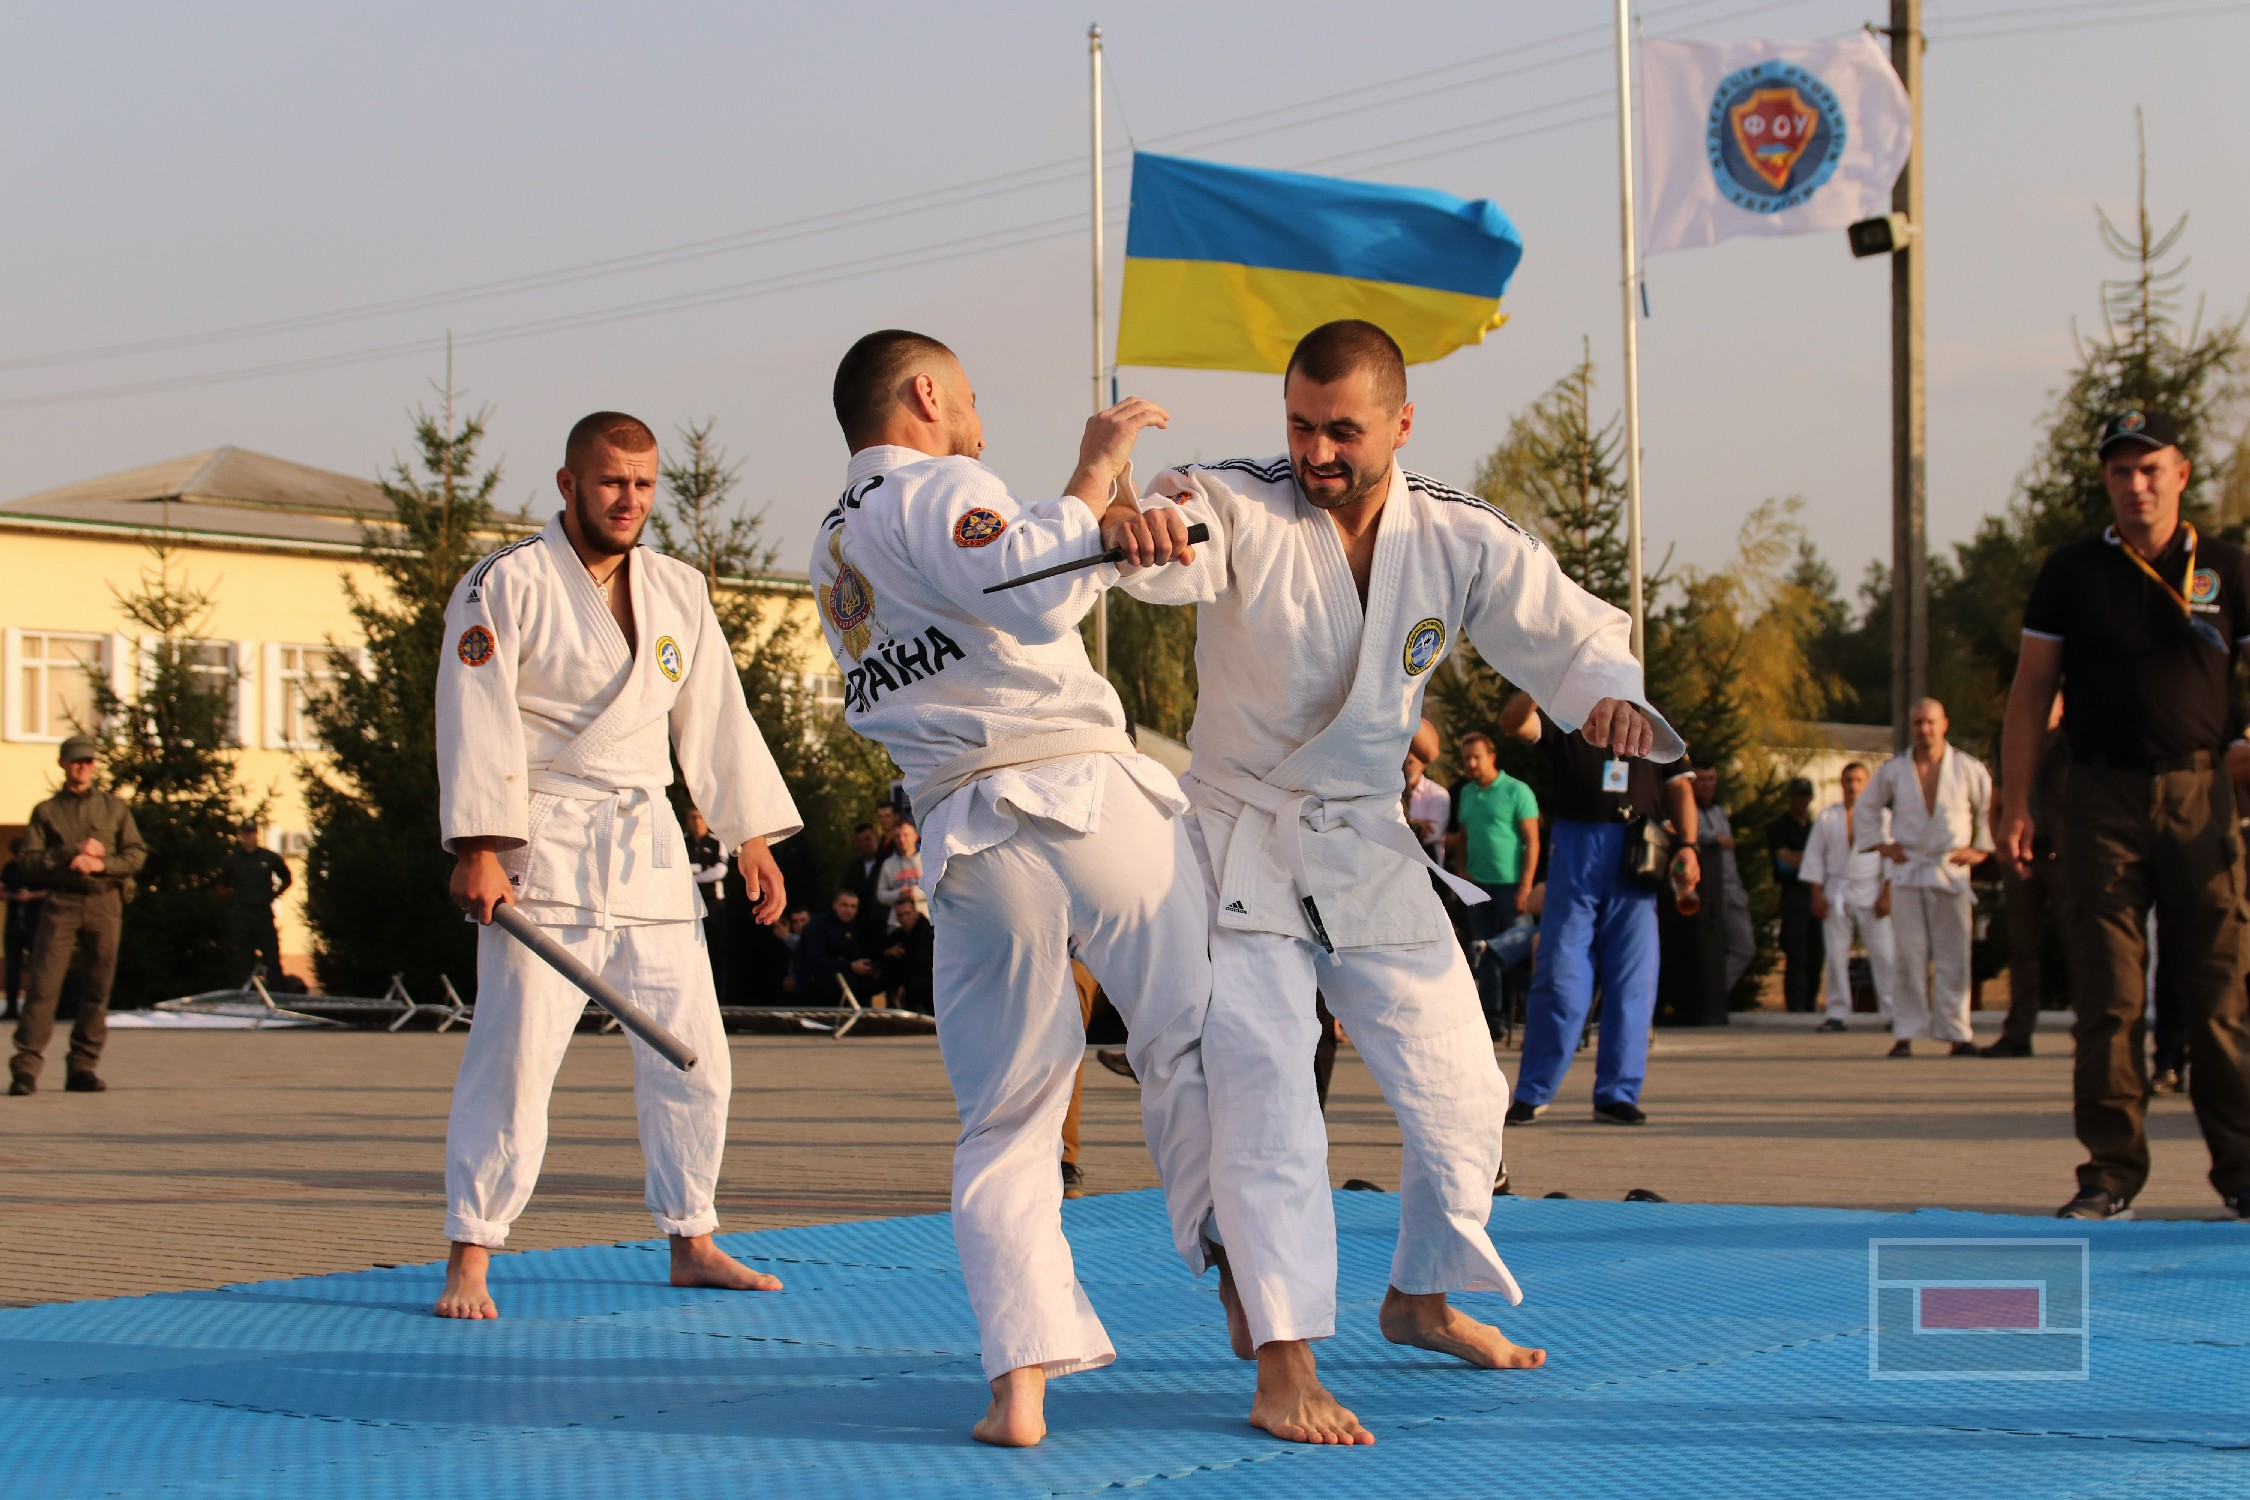 THIS YEAR'S CHAMPIONSHIP OF UKRAINE AMONG BODYGUARDS WILL TAKE PLACE ON JULY 16-20